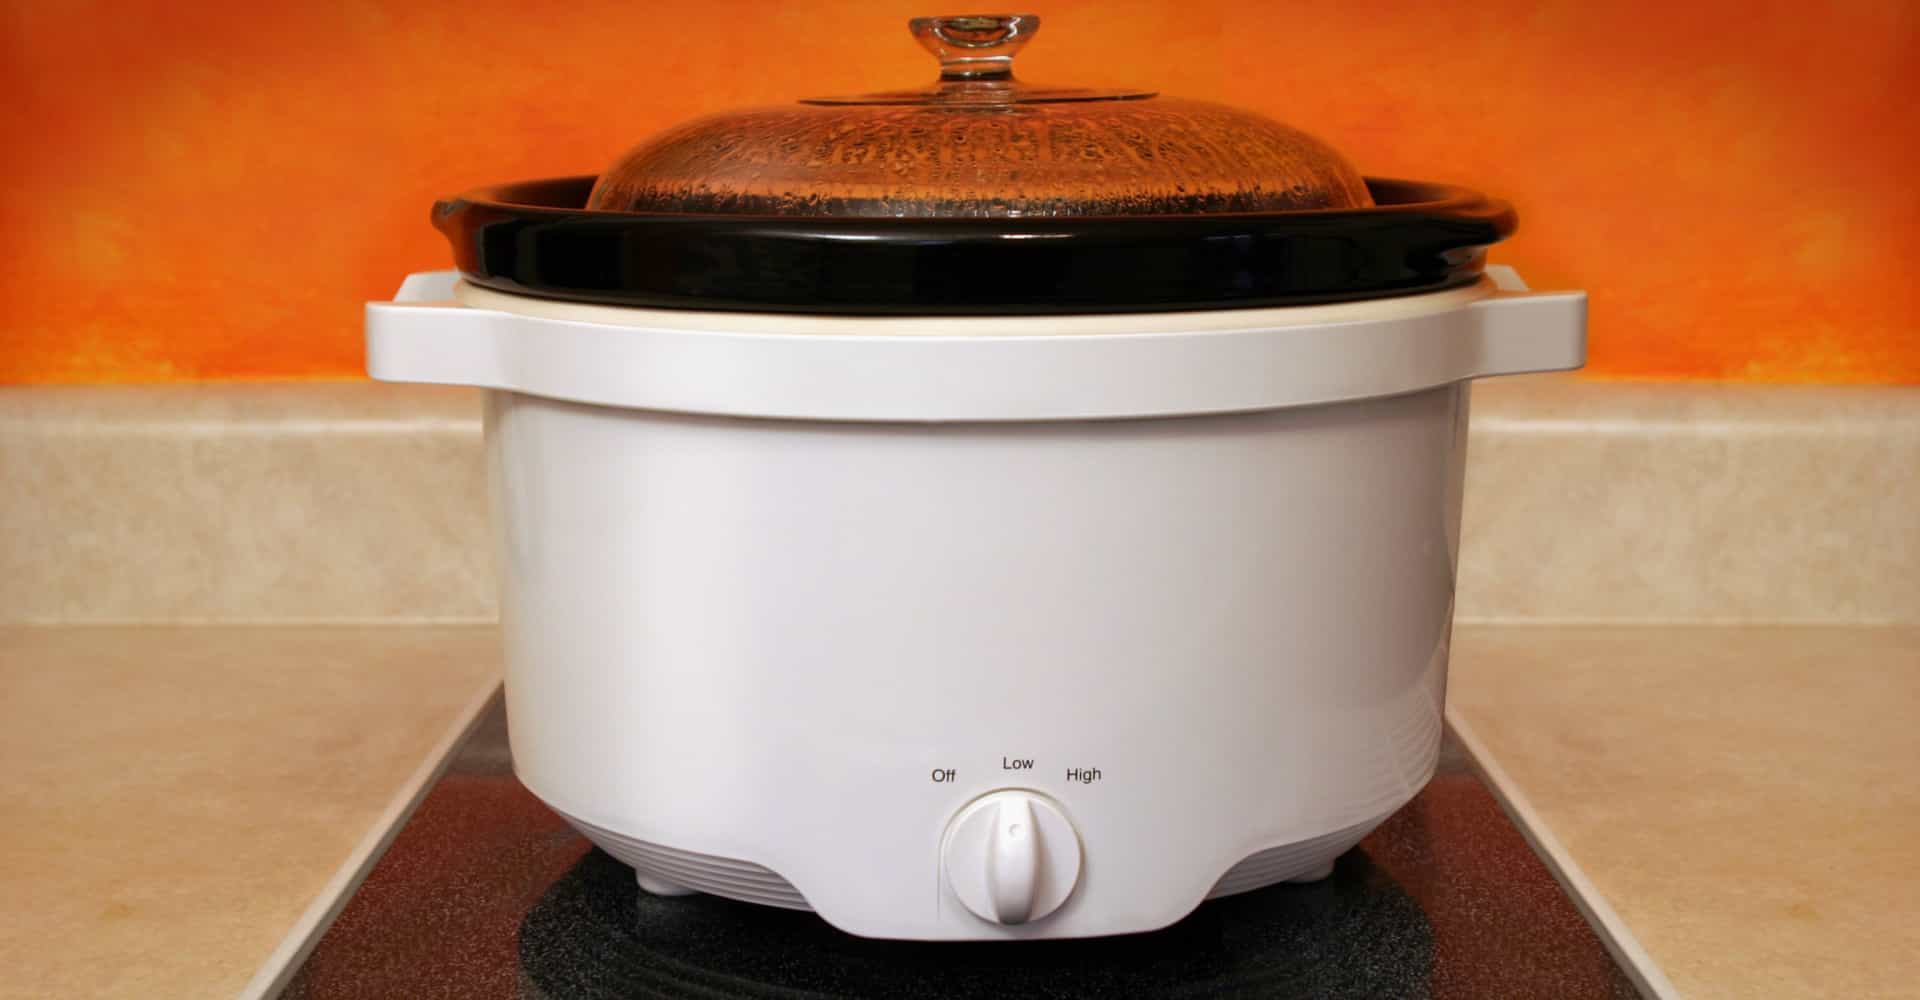 'This is Us' significantly boosted Crock-Pot sales